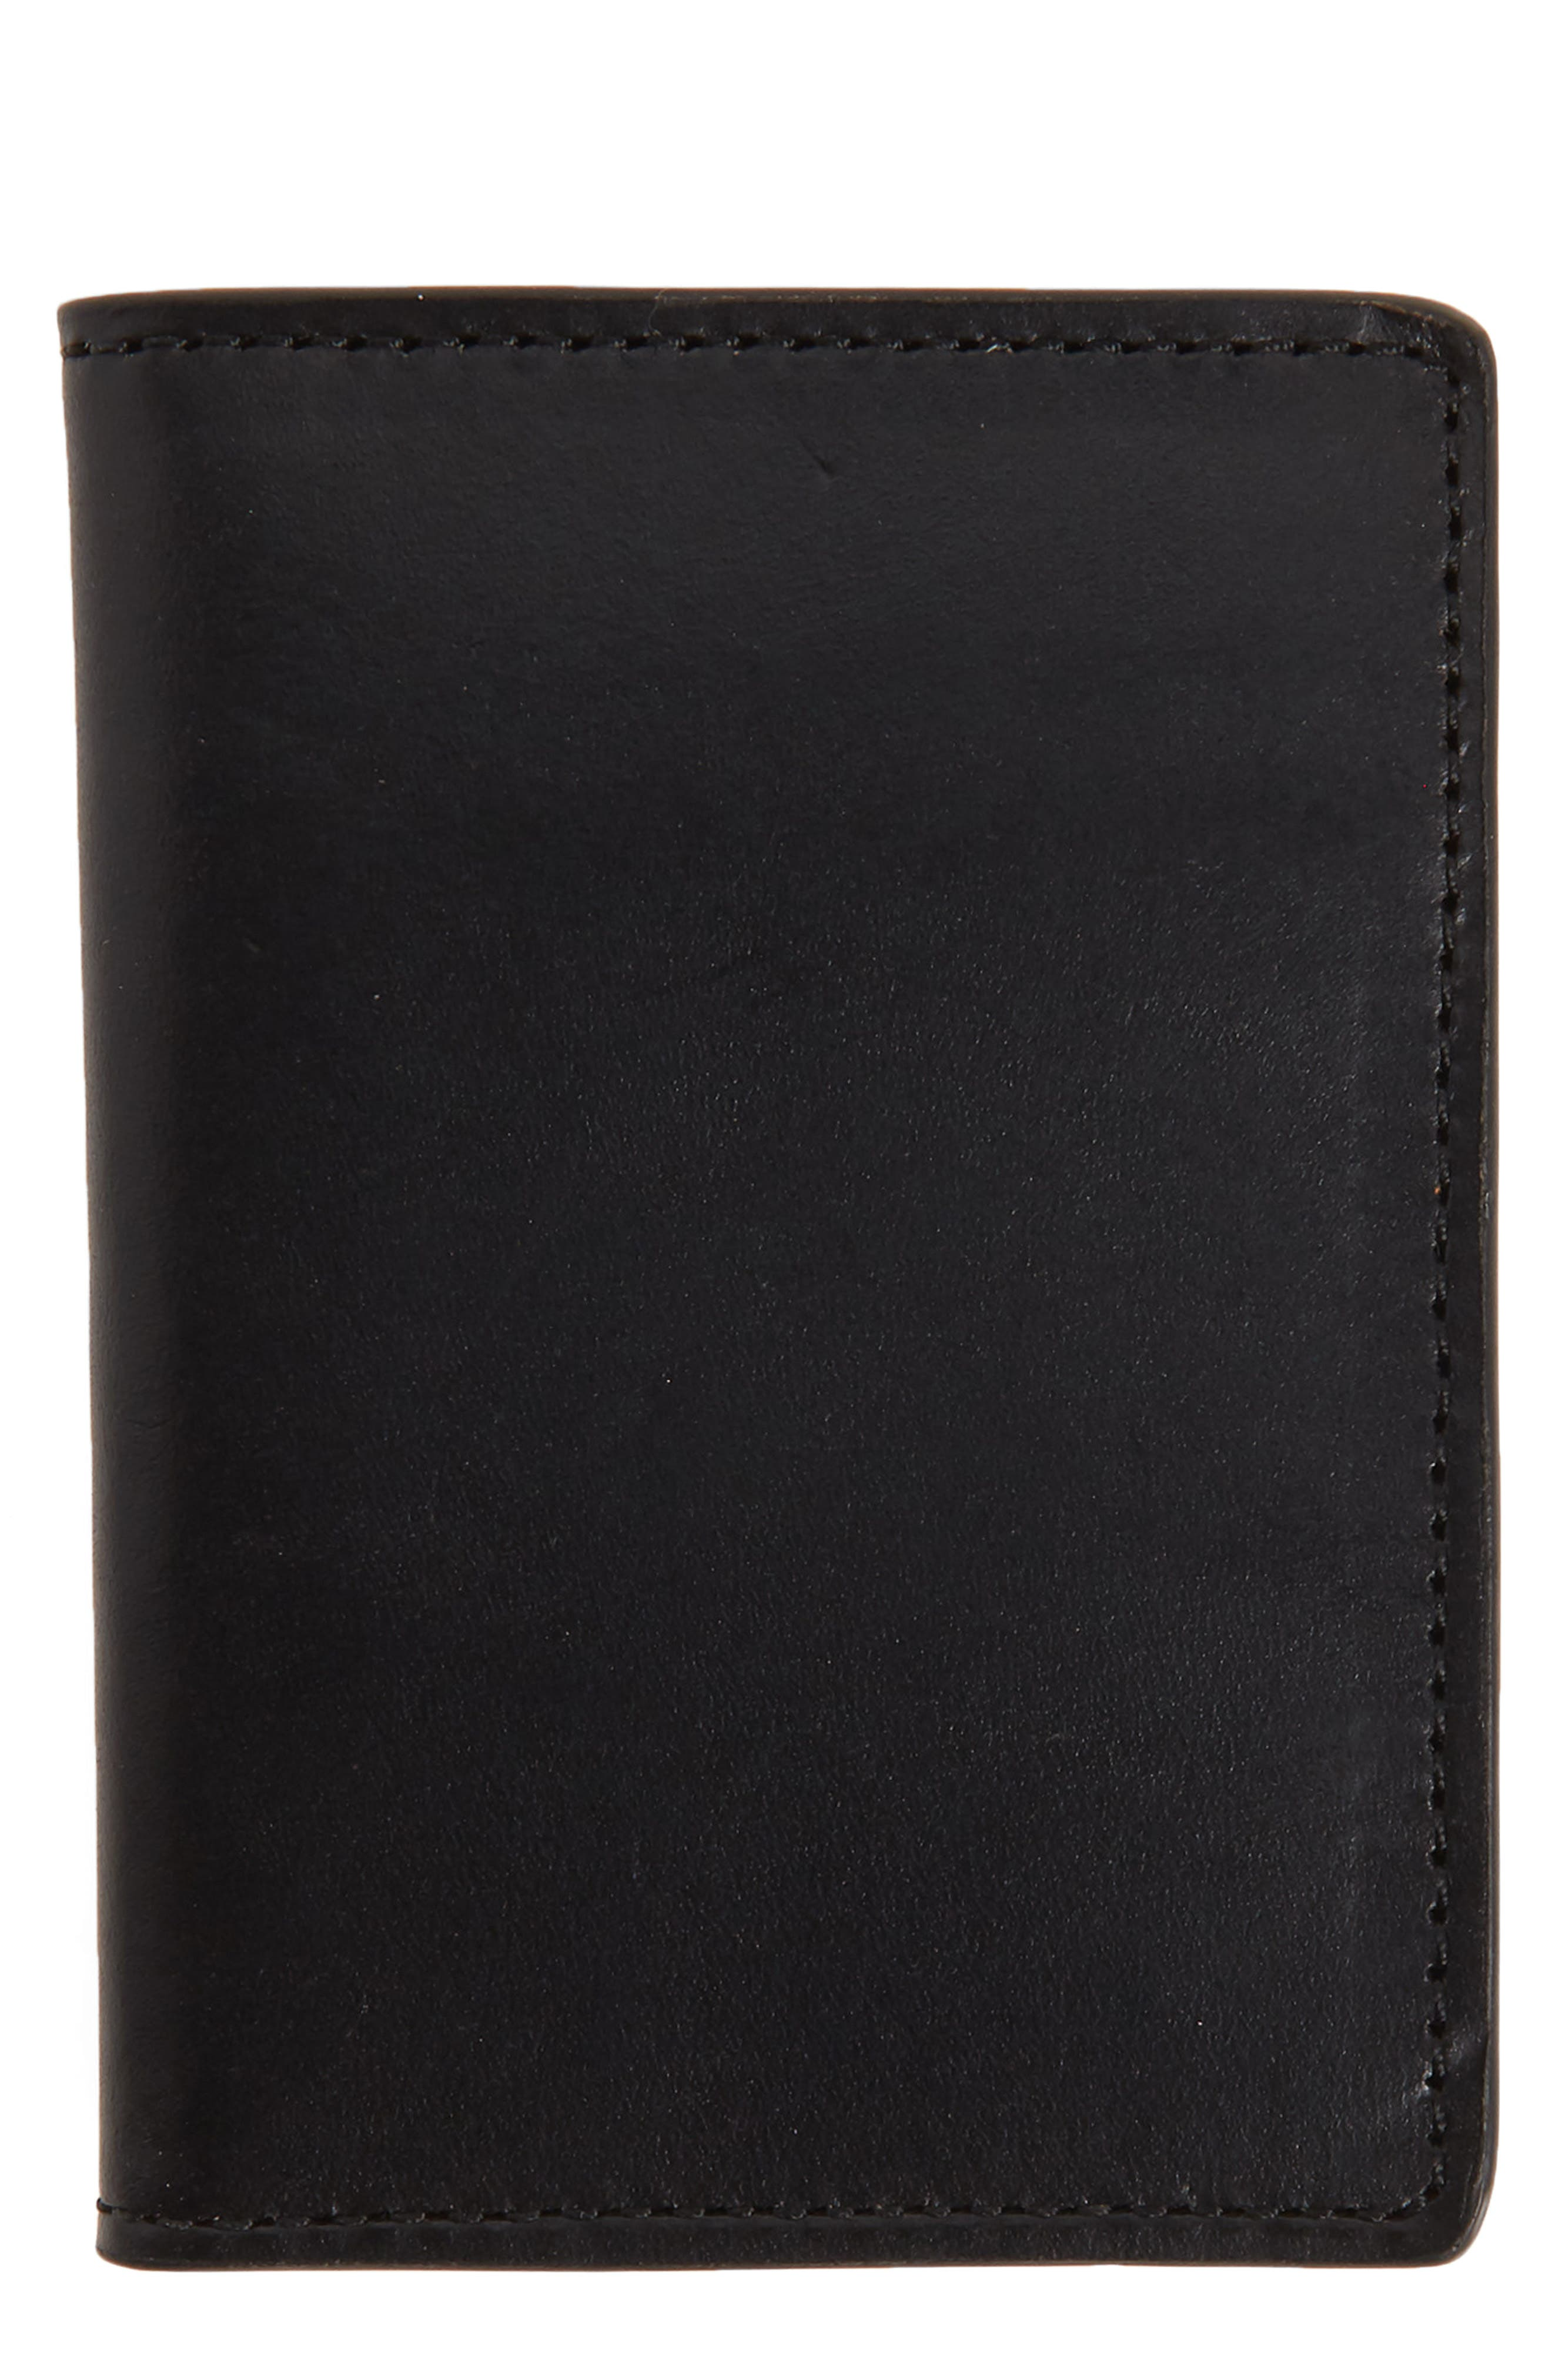 NORDSTROM MEN'S SHOP, Darien Leather Bifold Card Case, Main thumbnail 1, color, BLACK